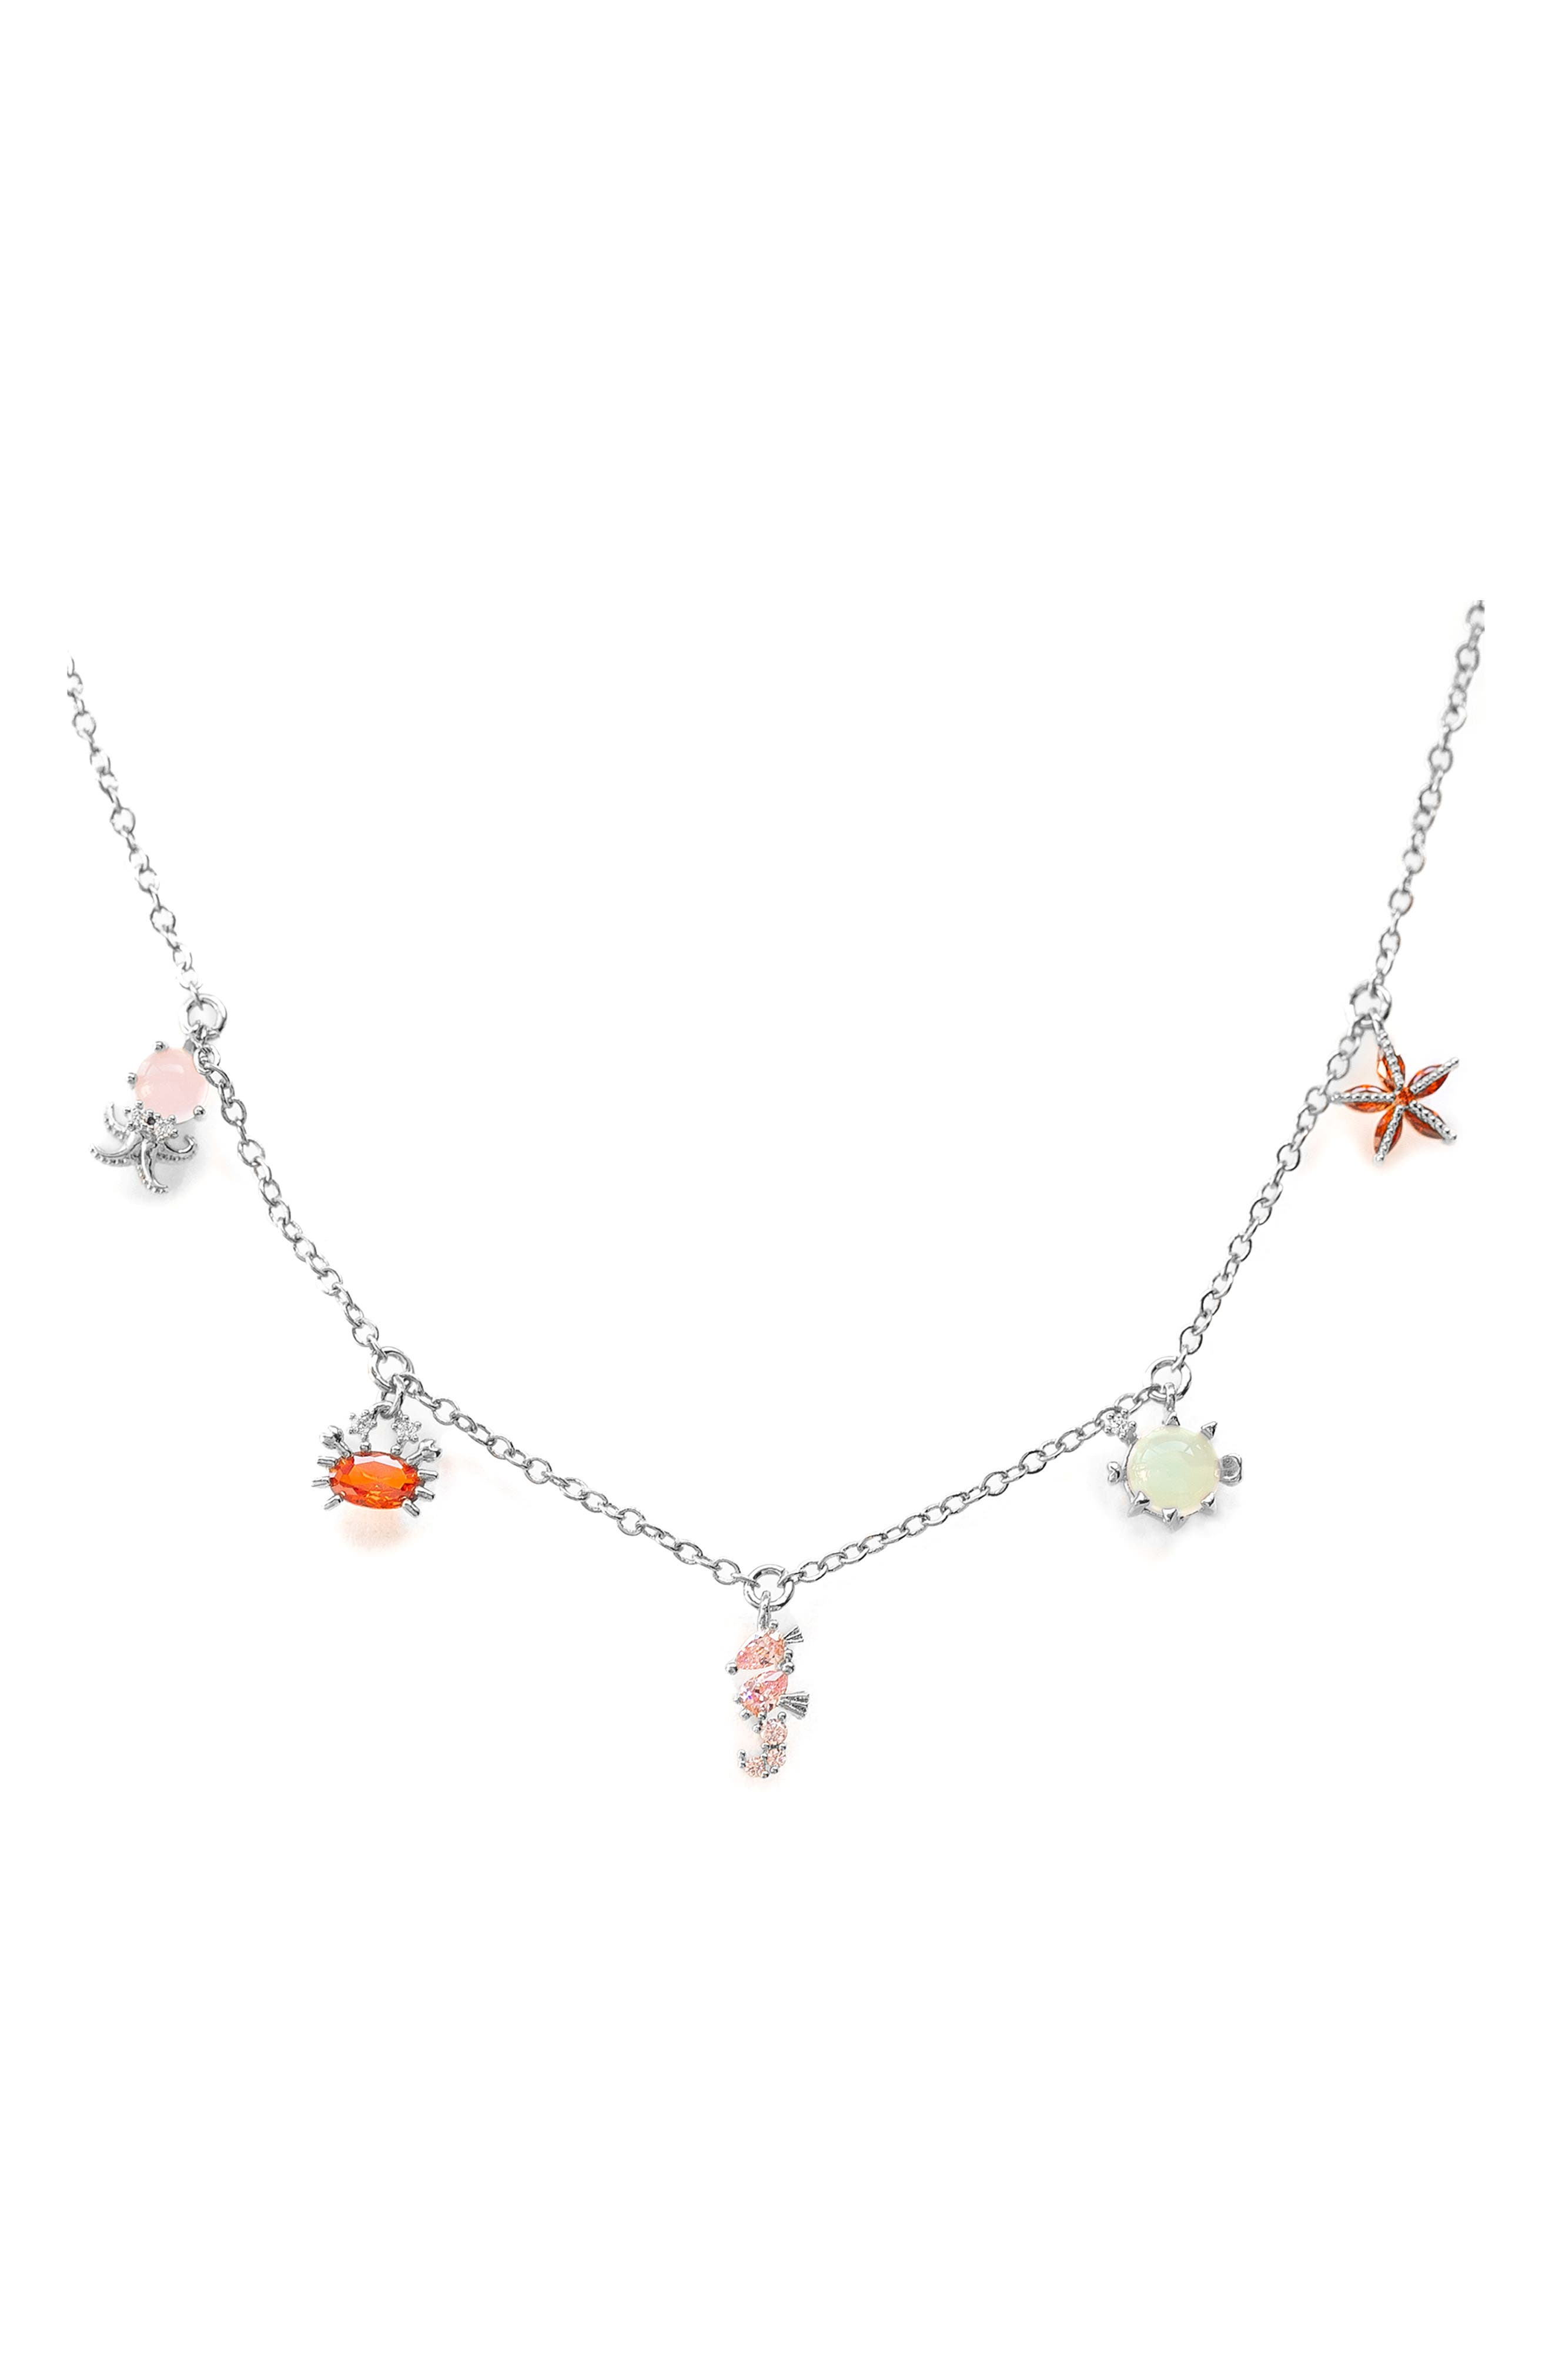 Under The Sea Charm Necklace